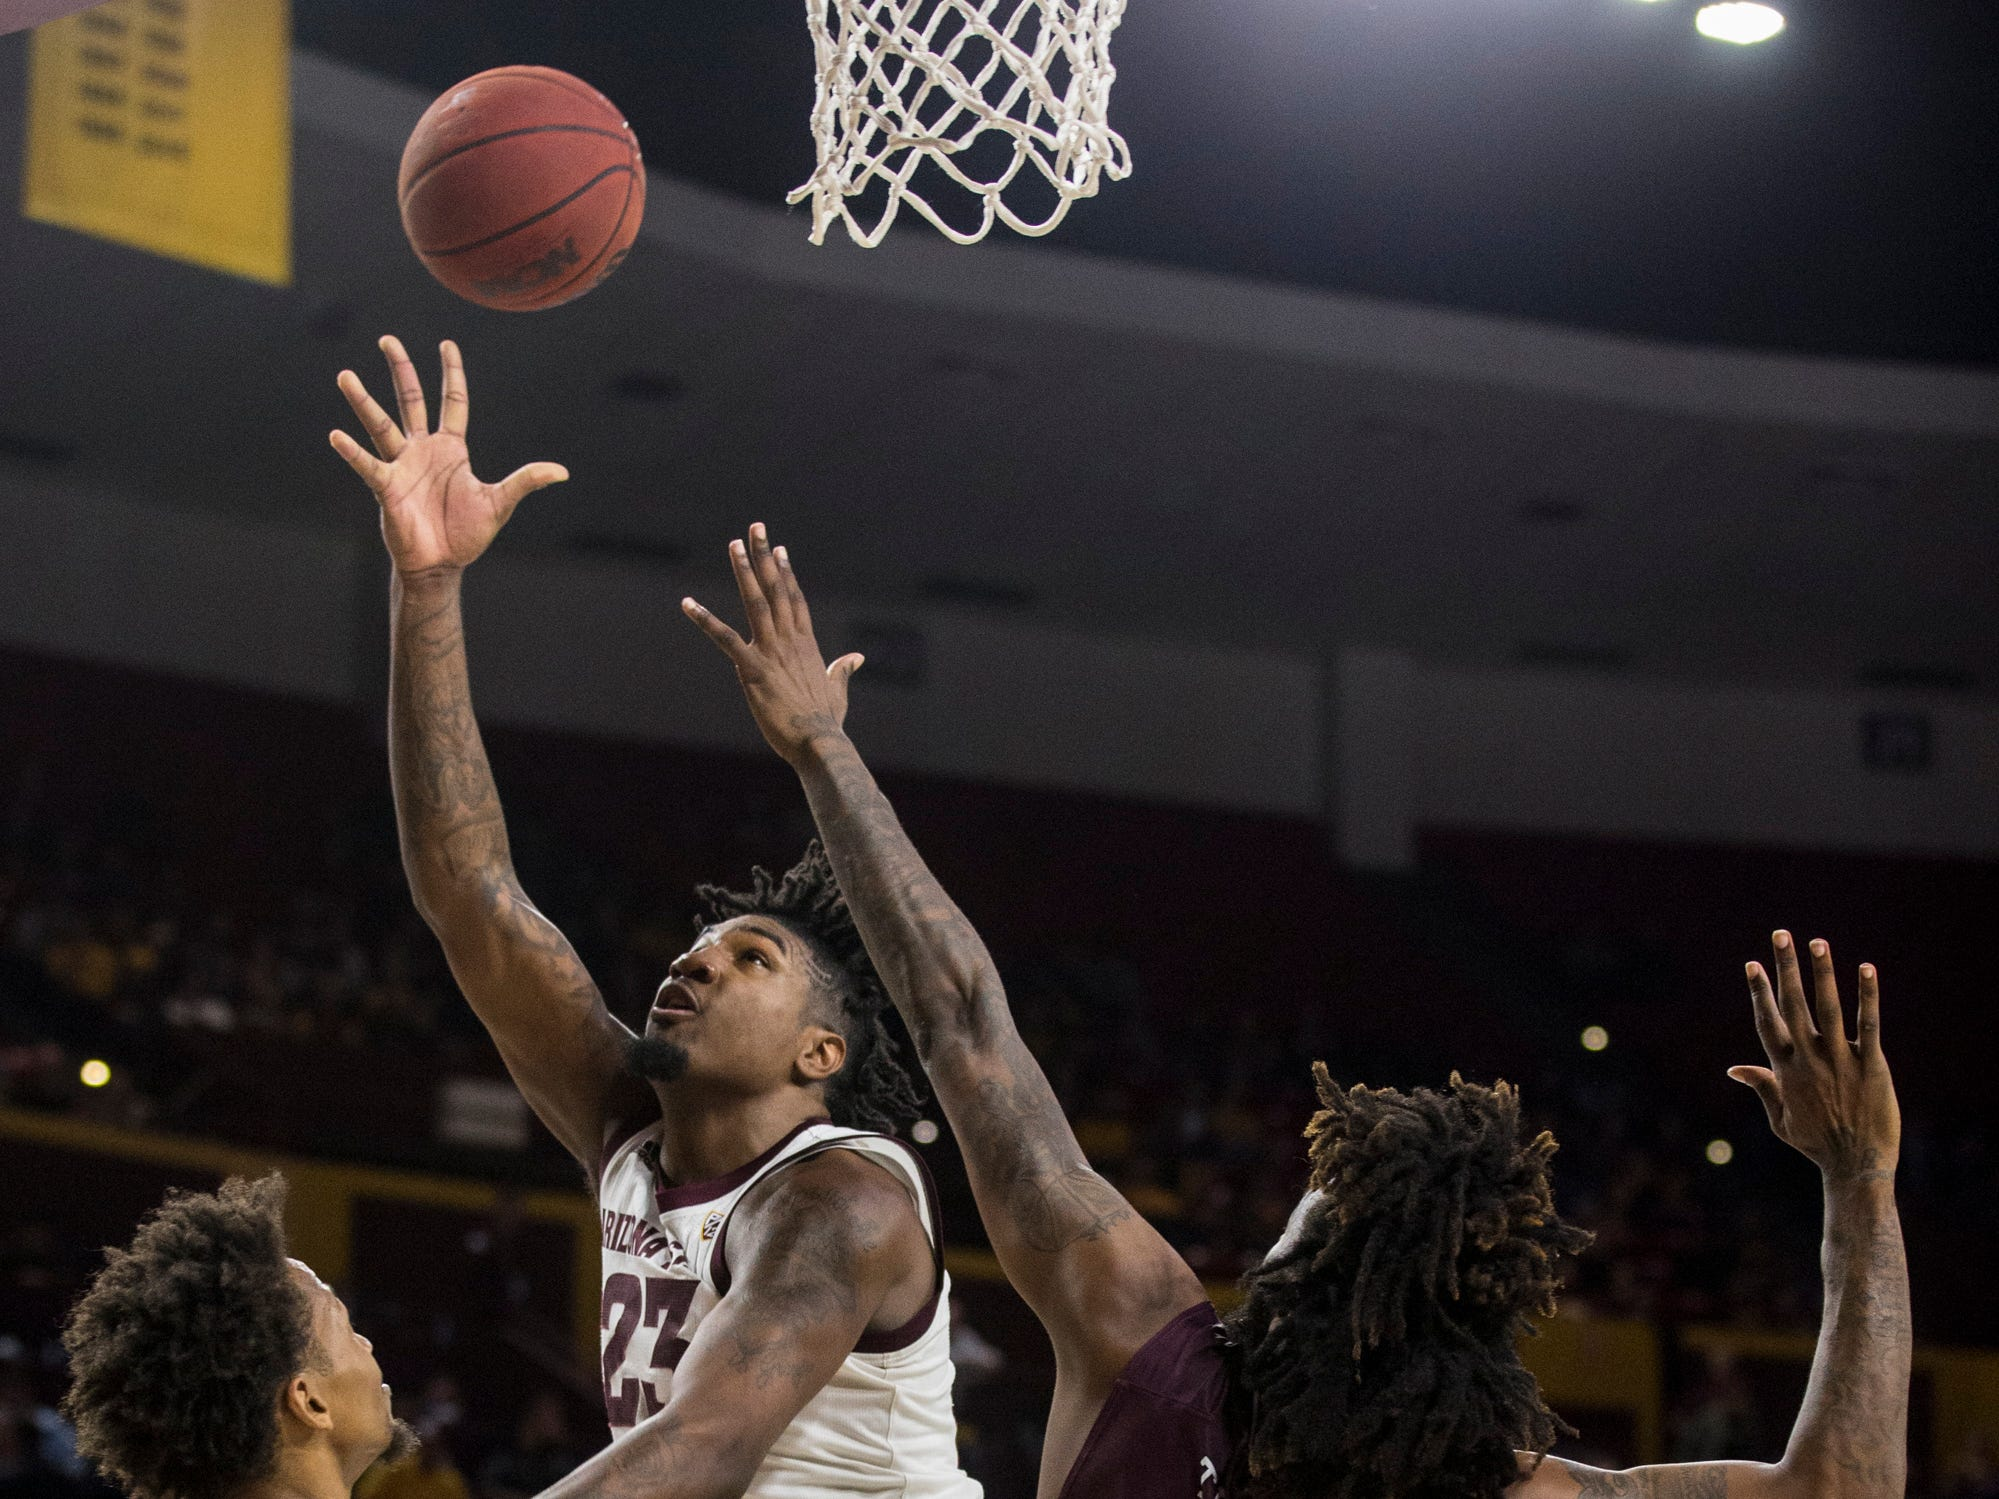 Arizona State's Romello White attempts a layup against Texas Southern in the second half on Saturday, Dec. 1, 2018, at Wells Fargo Arena in Tempe, Ariz.